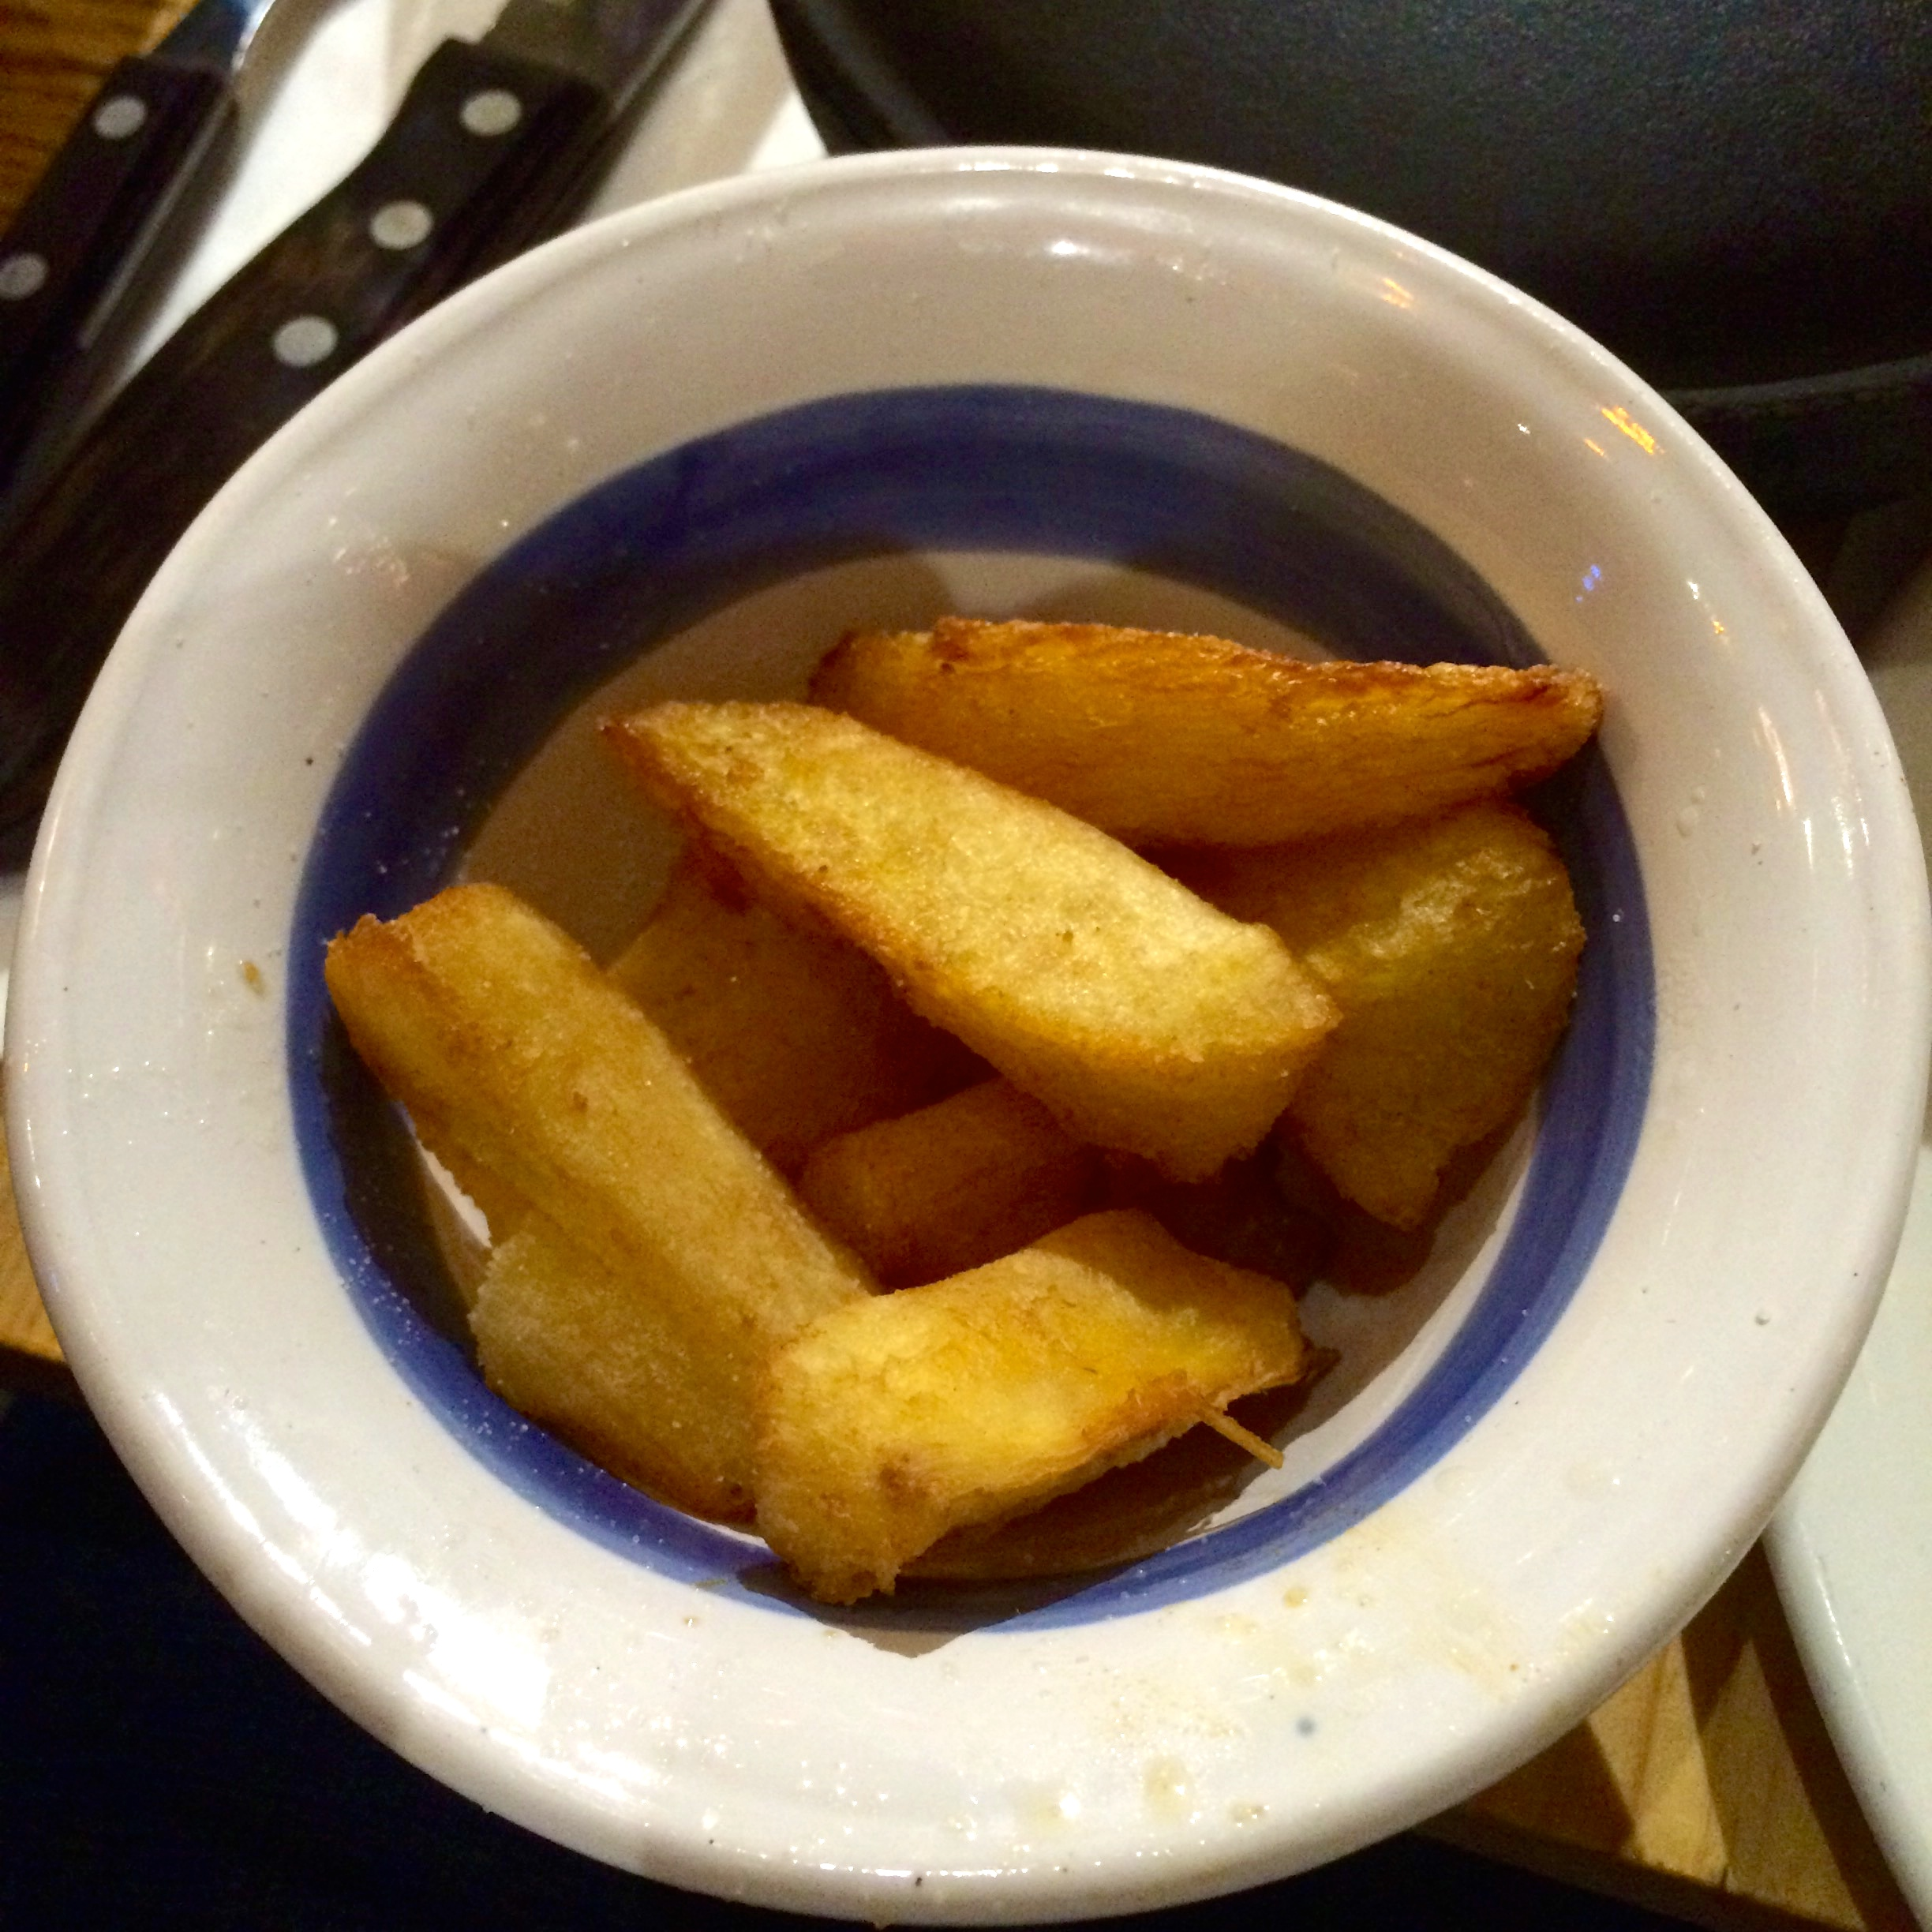 https://i2.wp.com/fatgayvegan.com/wp-content/uploads/2015/12/cassava-chips.jpg?fit=2448%2C2448